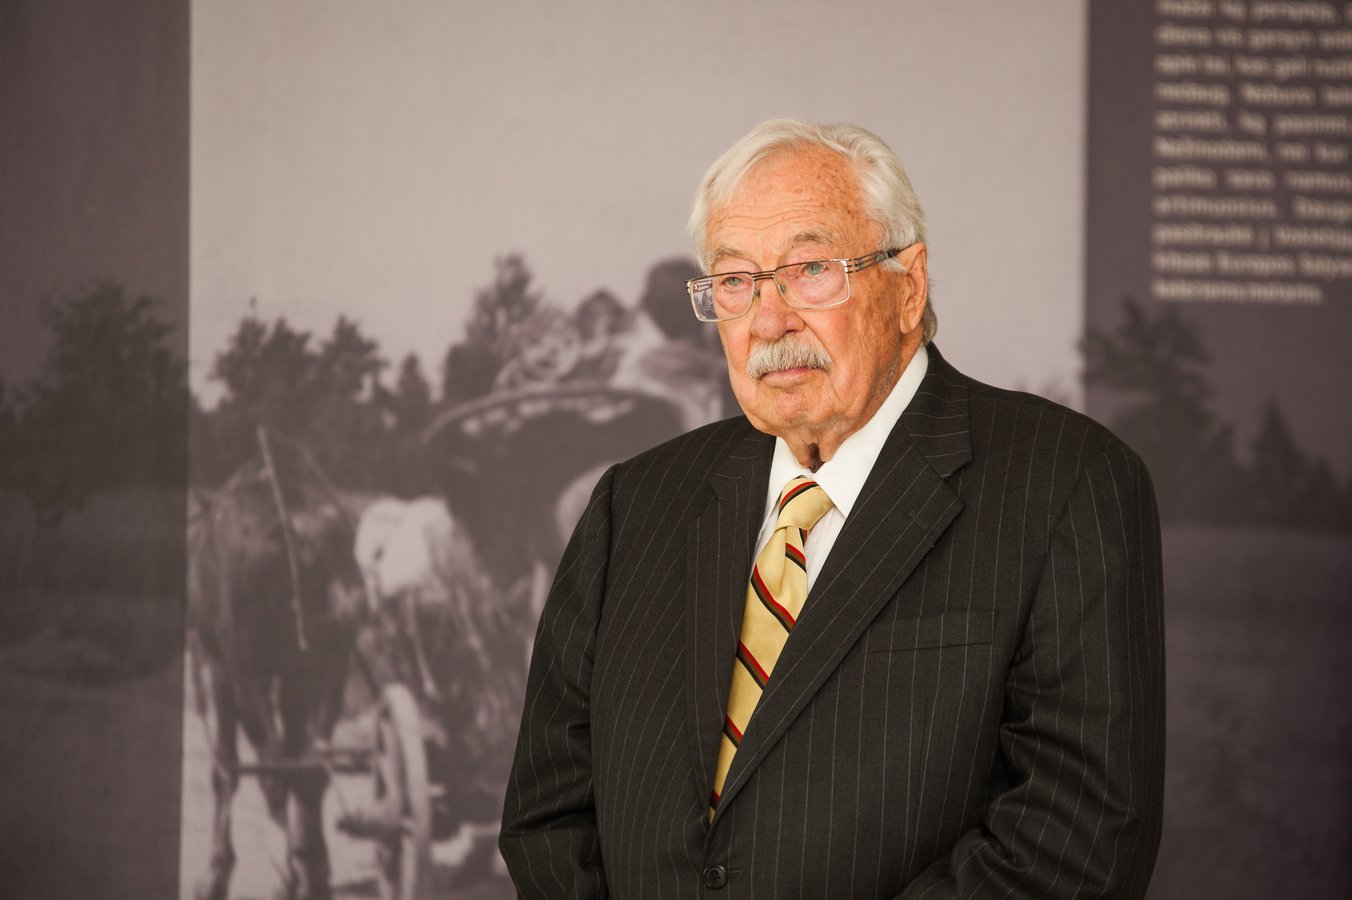 The musuem's founder, Stanley Balzekas Jr., came from a family of Lithuanian immigrants who were very active in their community and passionate for the cause of Lithuanian freedom. Image obtained from Pasaulio Lietuvis.